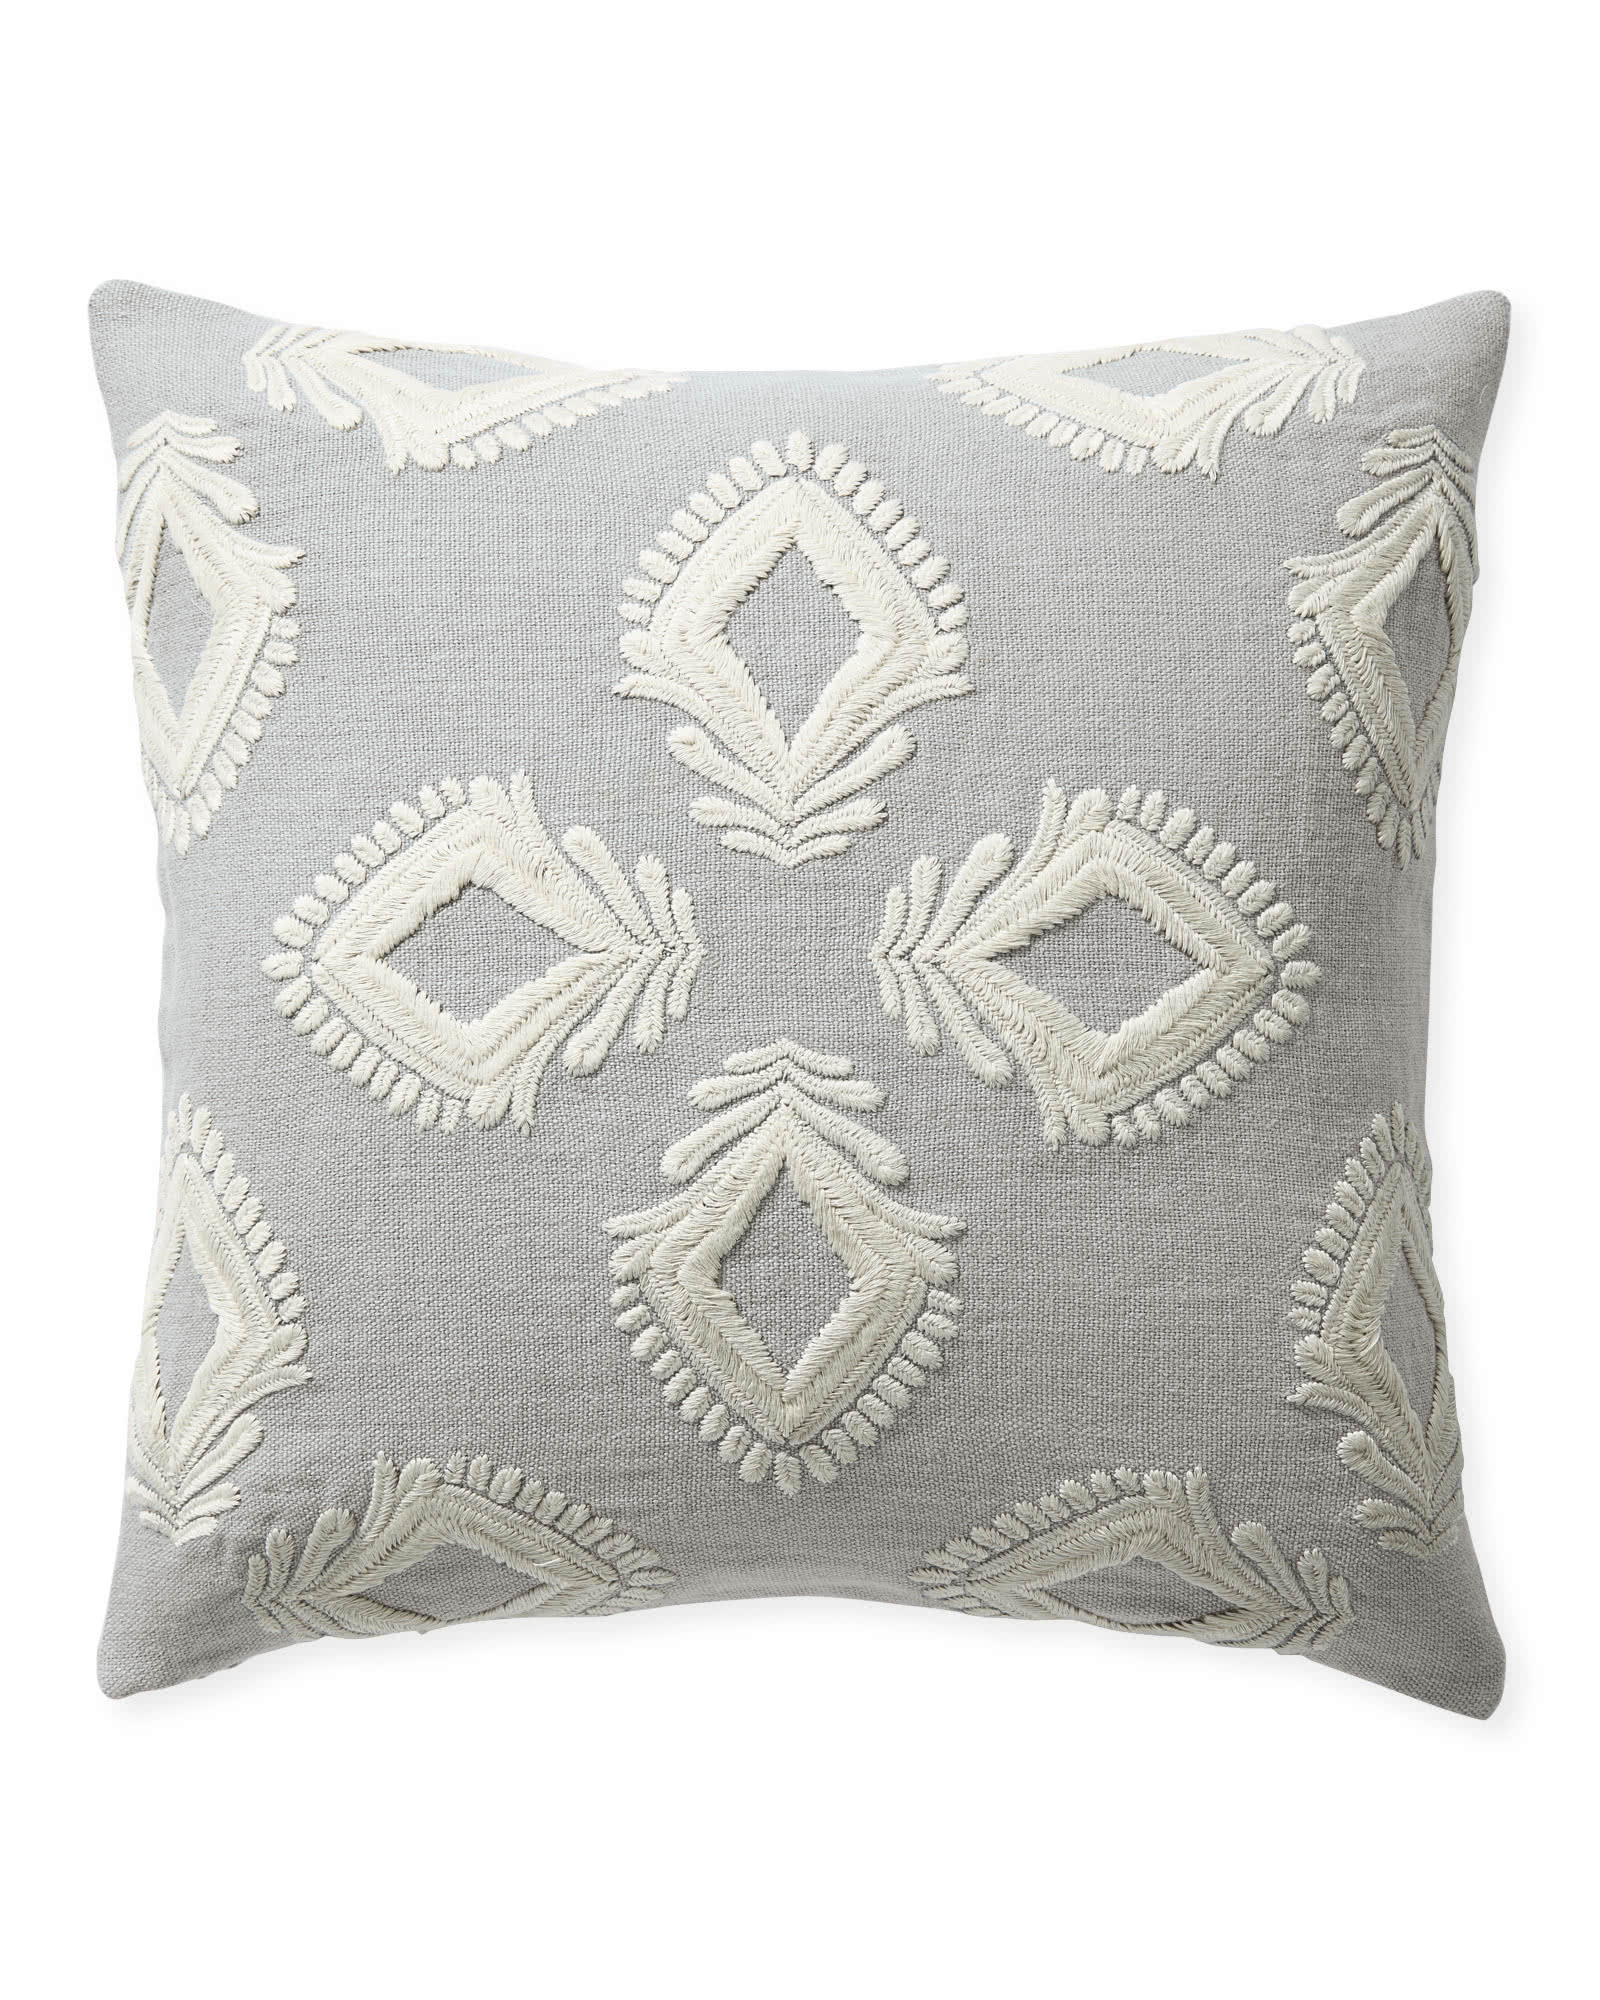 Leighton Pillow Cover, Smoke